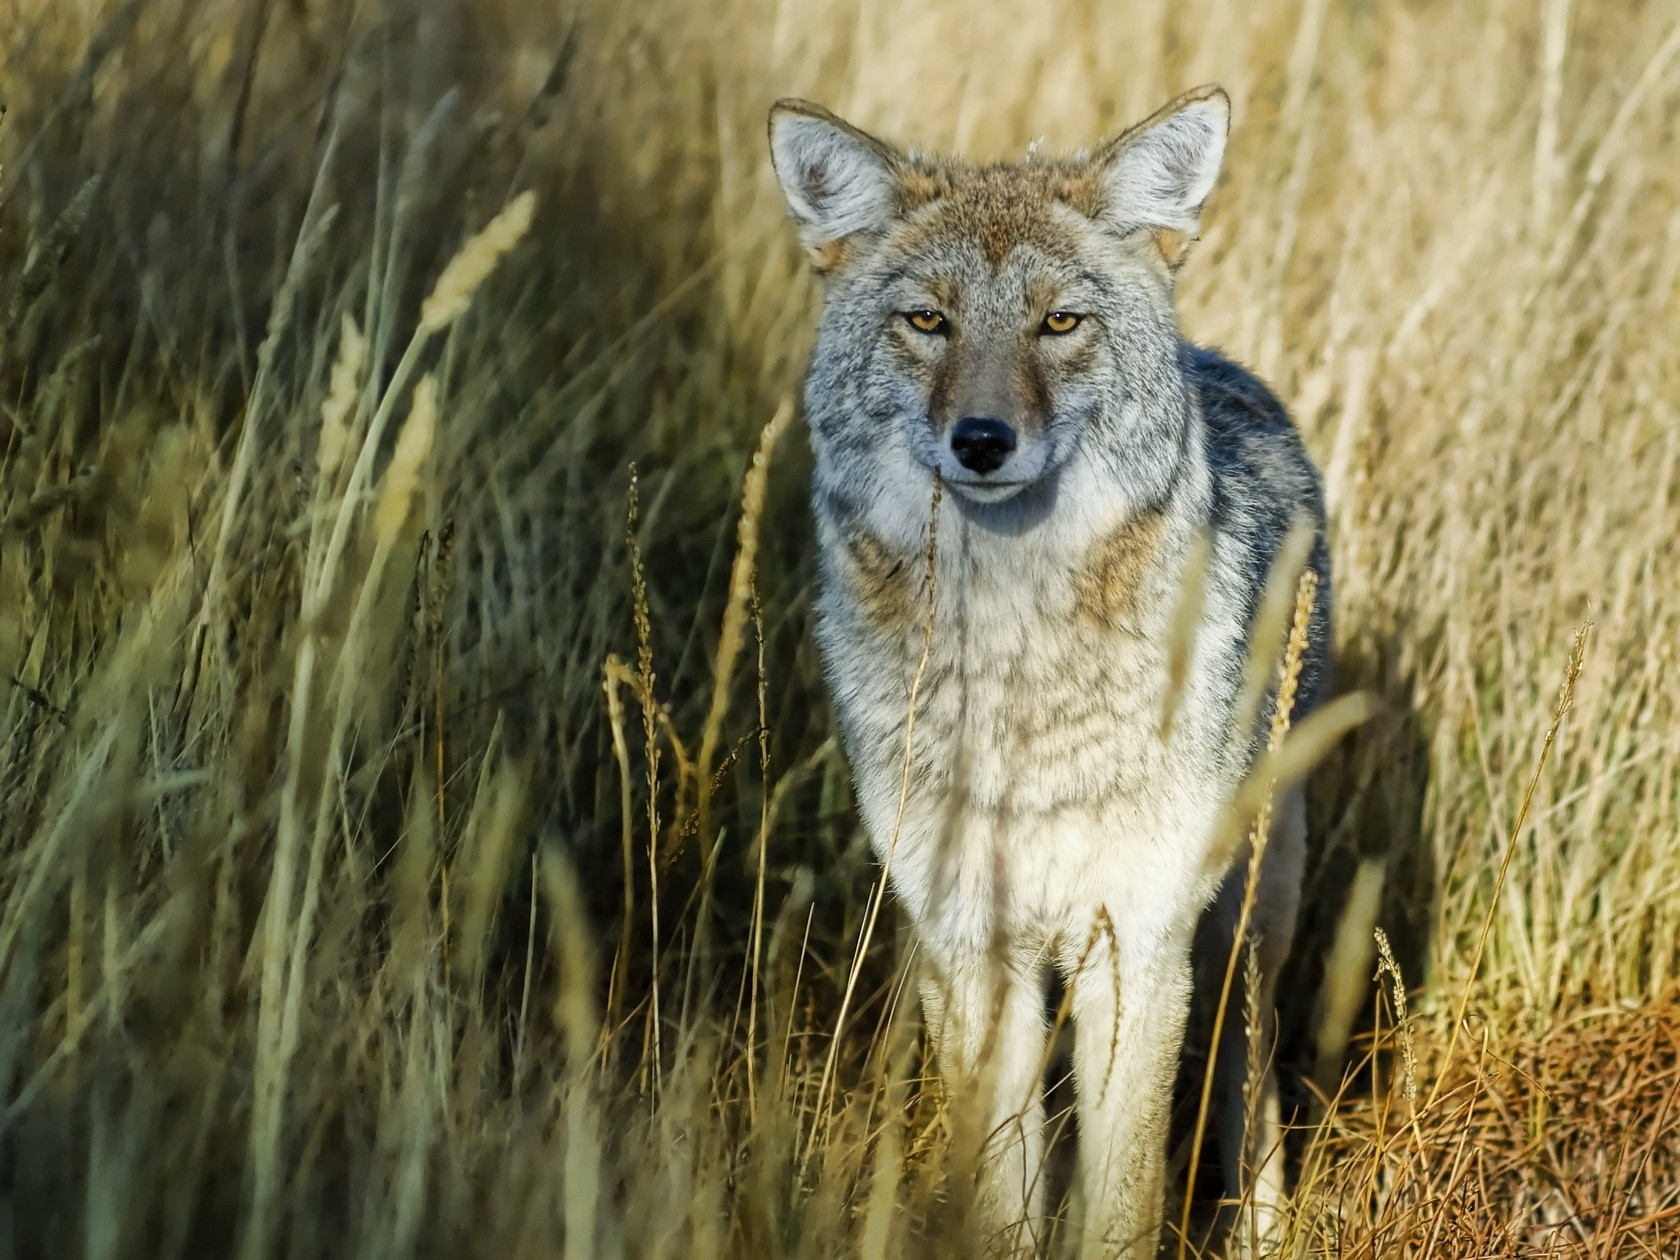 135255 download wallpaper Animals, Grass, Wolf, Predator, Hunting, Hunt screensavers and pictures for free